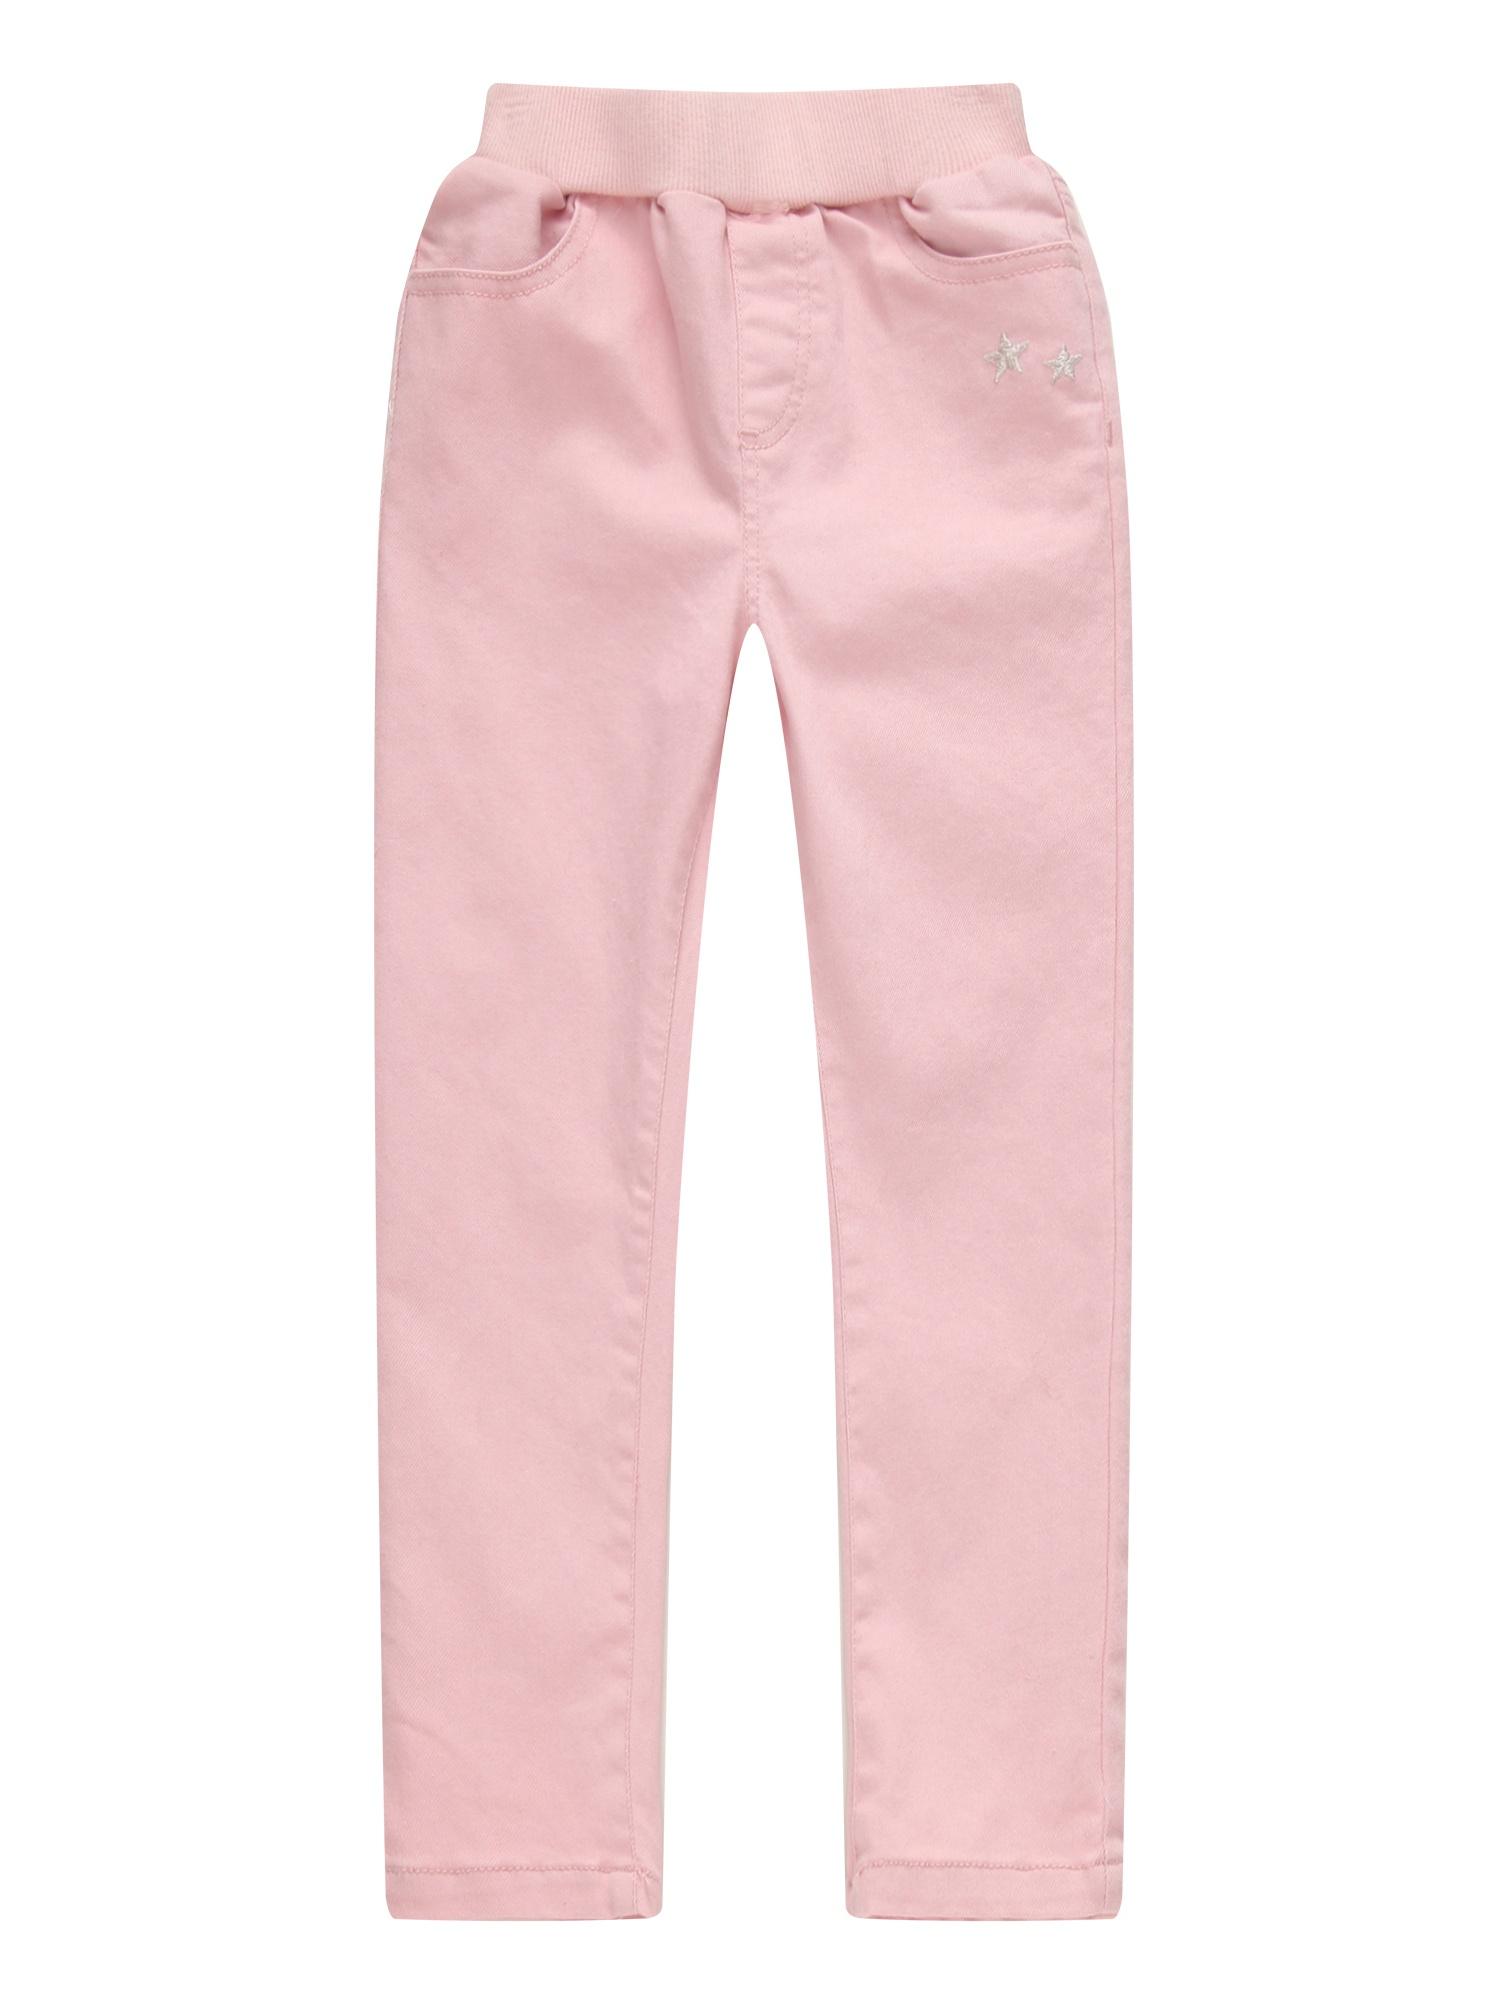 Richie House Girls' Sweet cotton pants RH2228